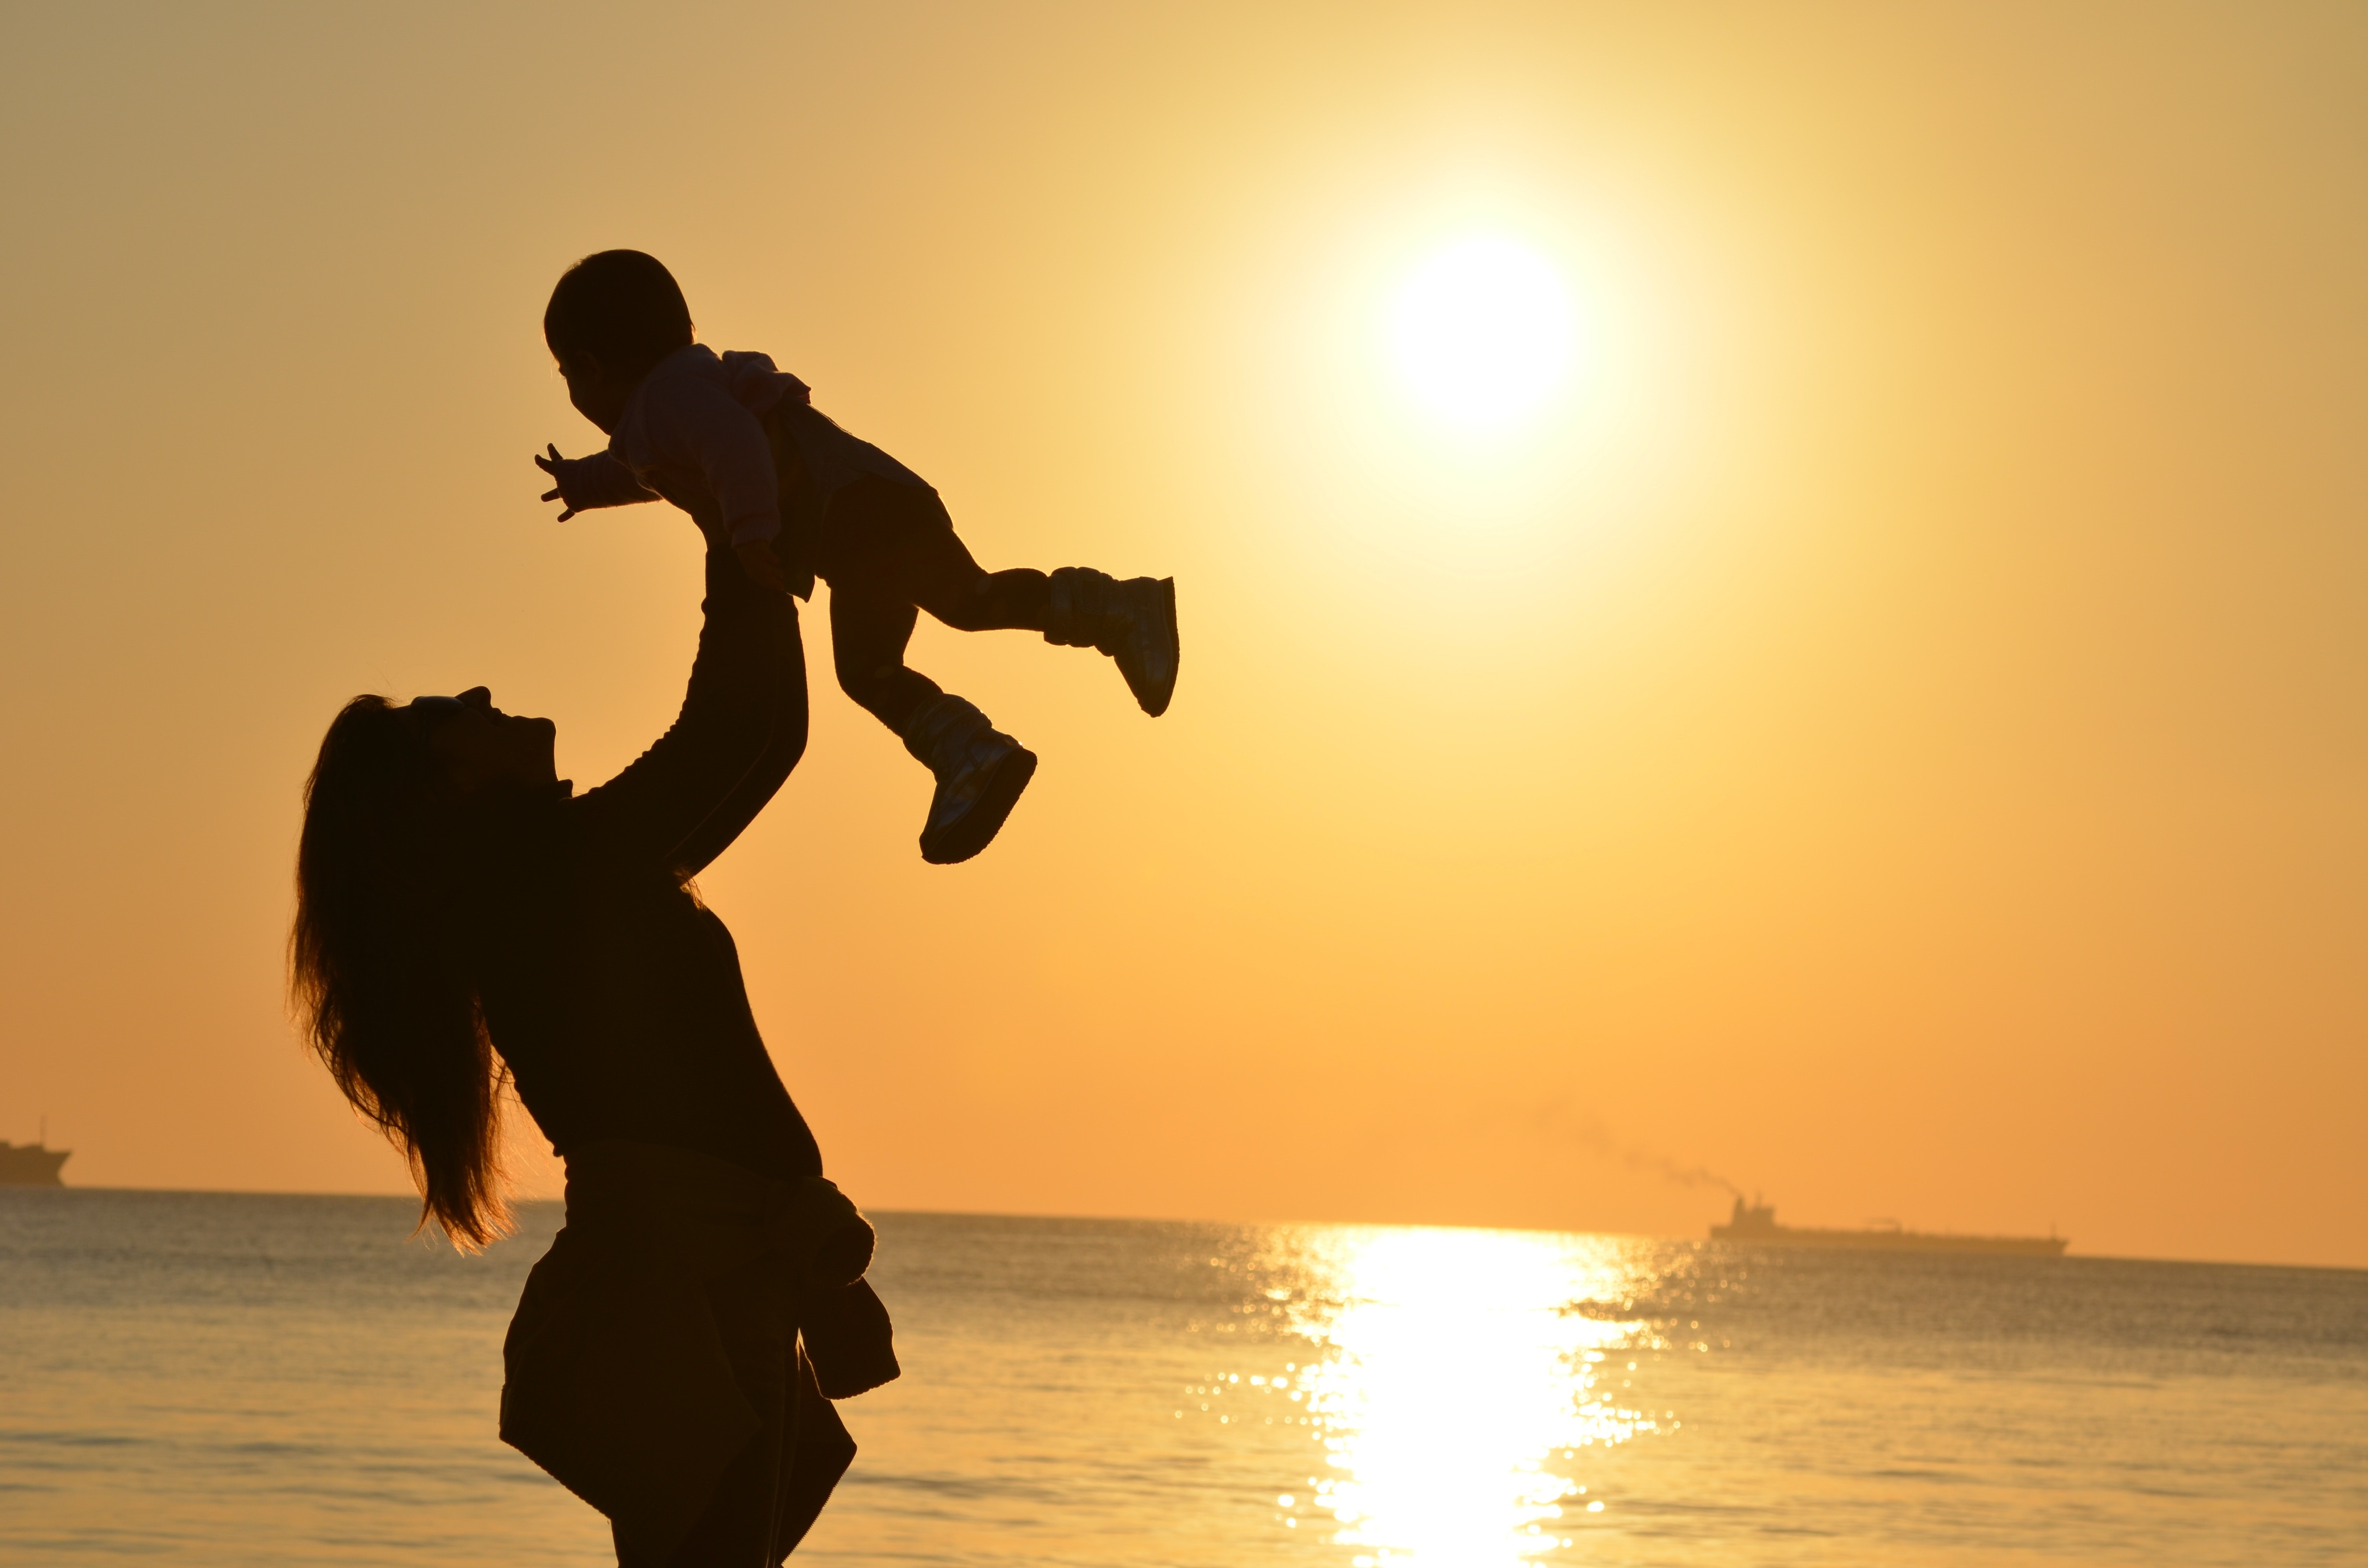 Woman Carrying Baby At Beach During Sunset Free Stock Photo